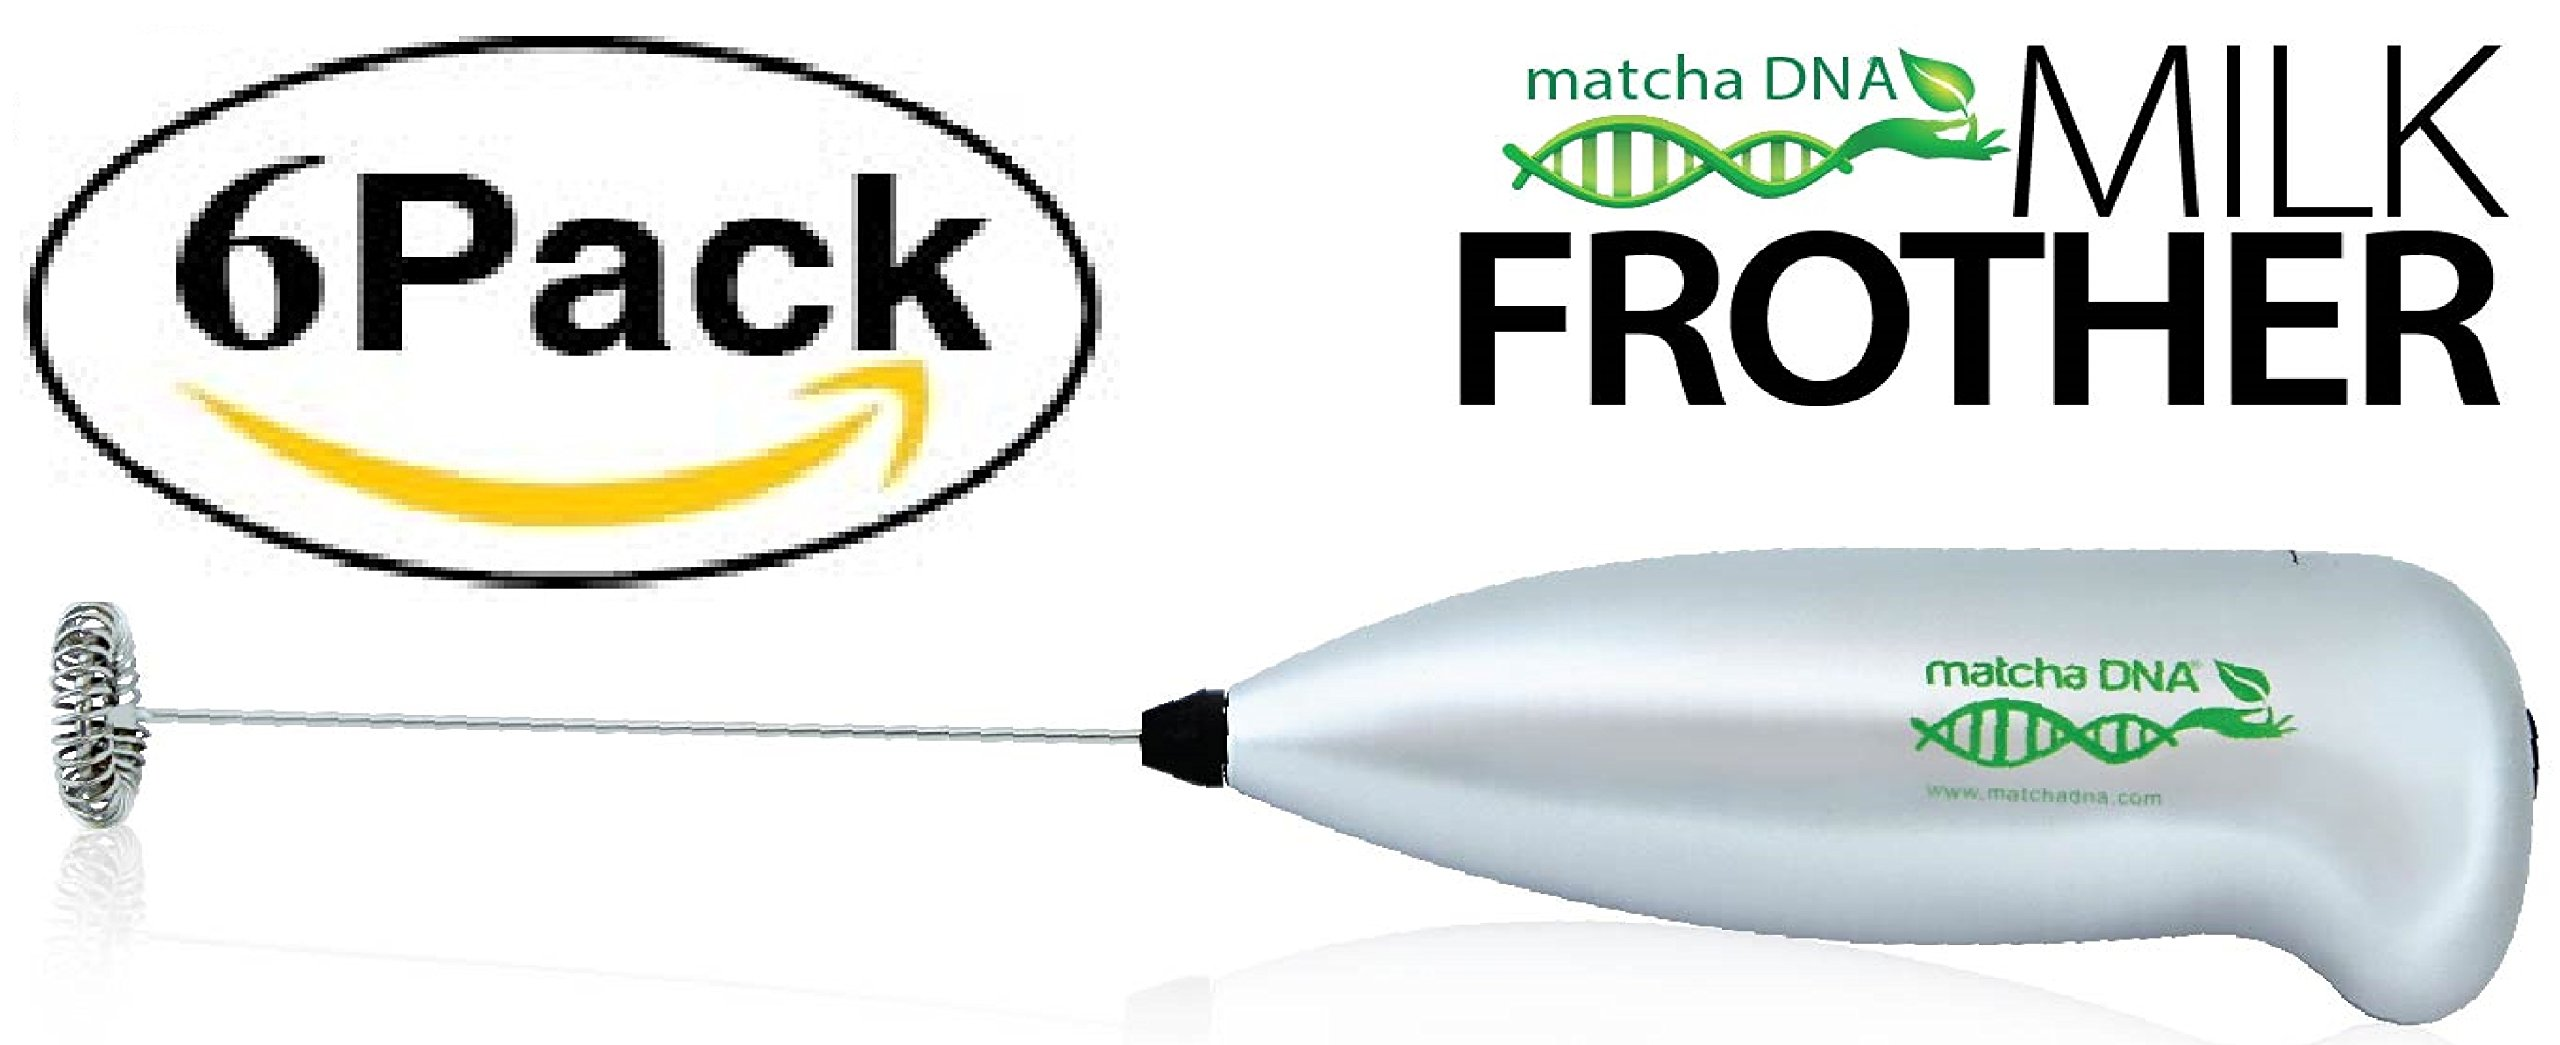 MatchaDNA Handheld Electric Milk Frother (Silver Handheld) (SYNCHKG079550)